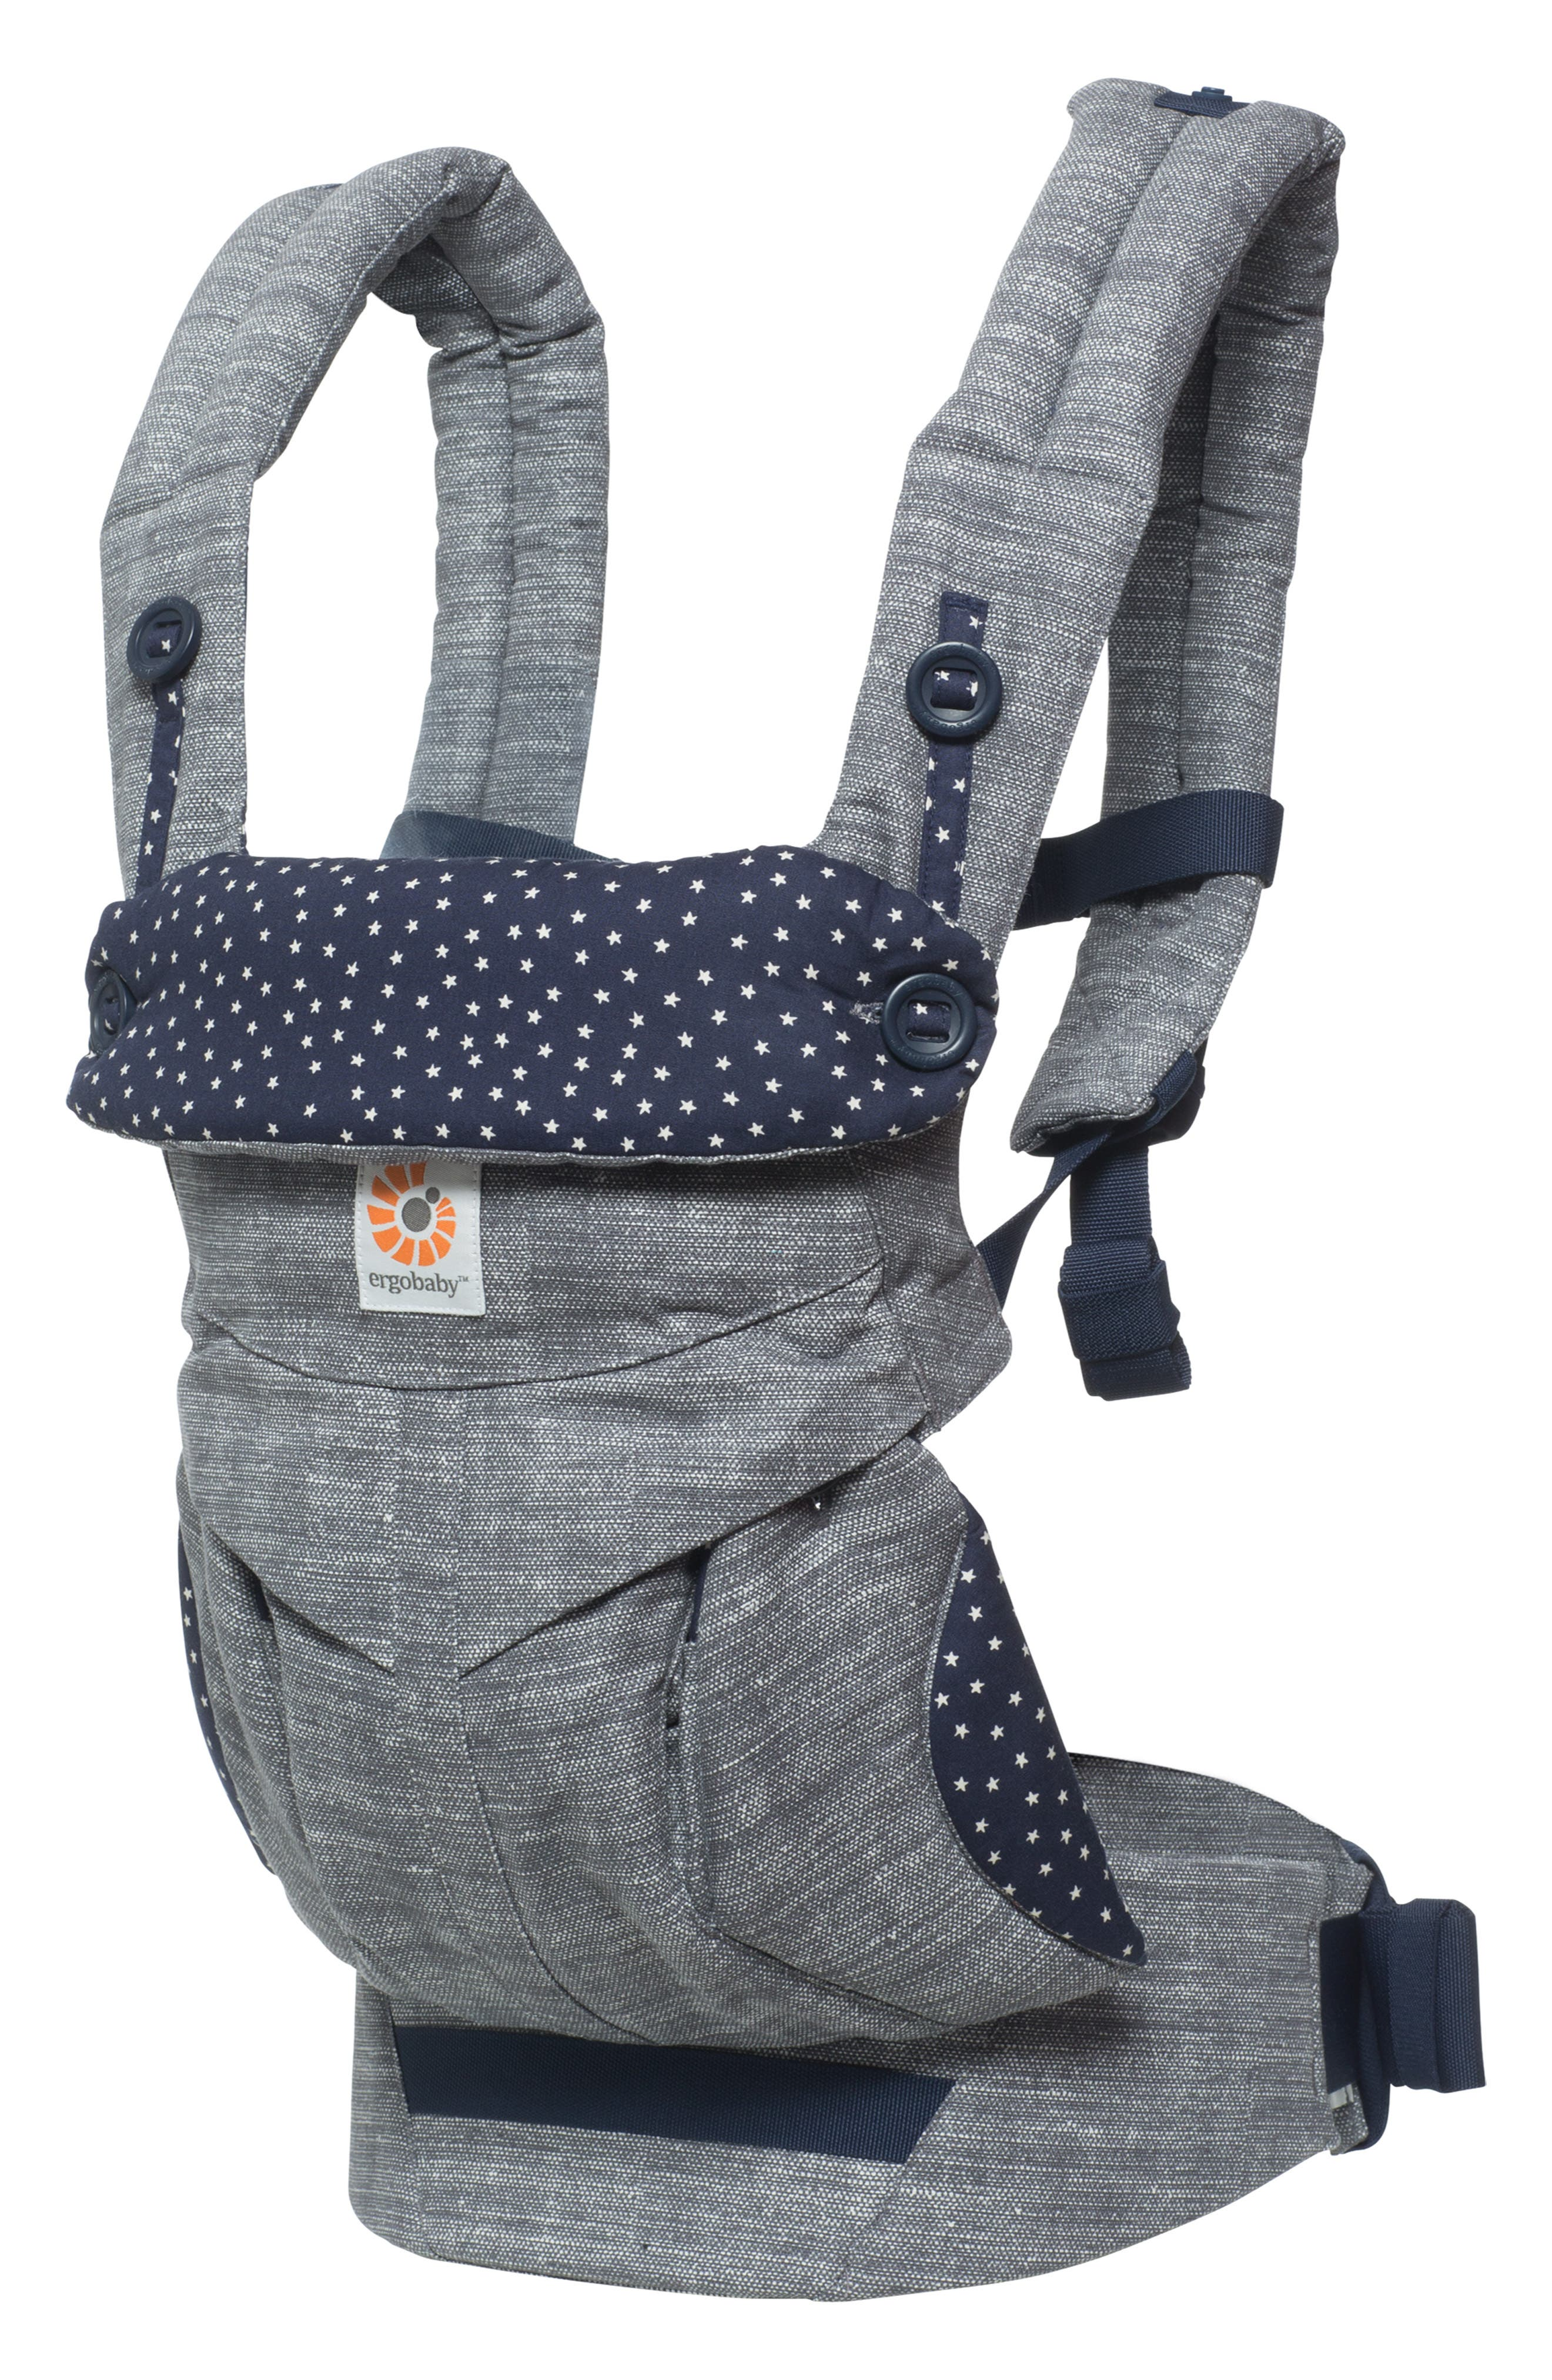 3130923e7d3 ERGObaby Baby Carriers   Gear